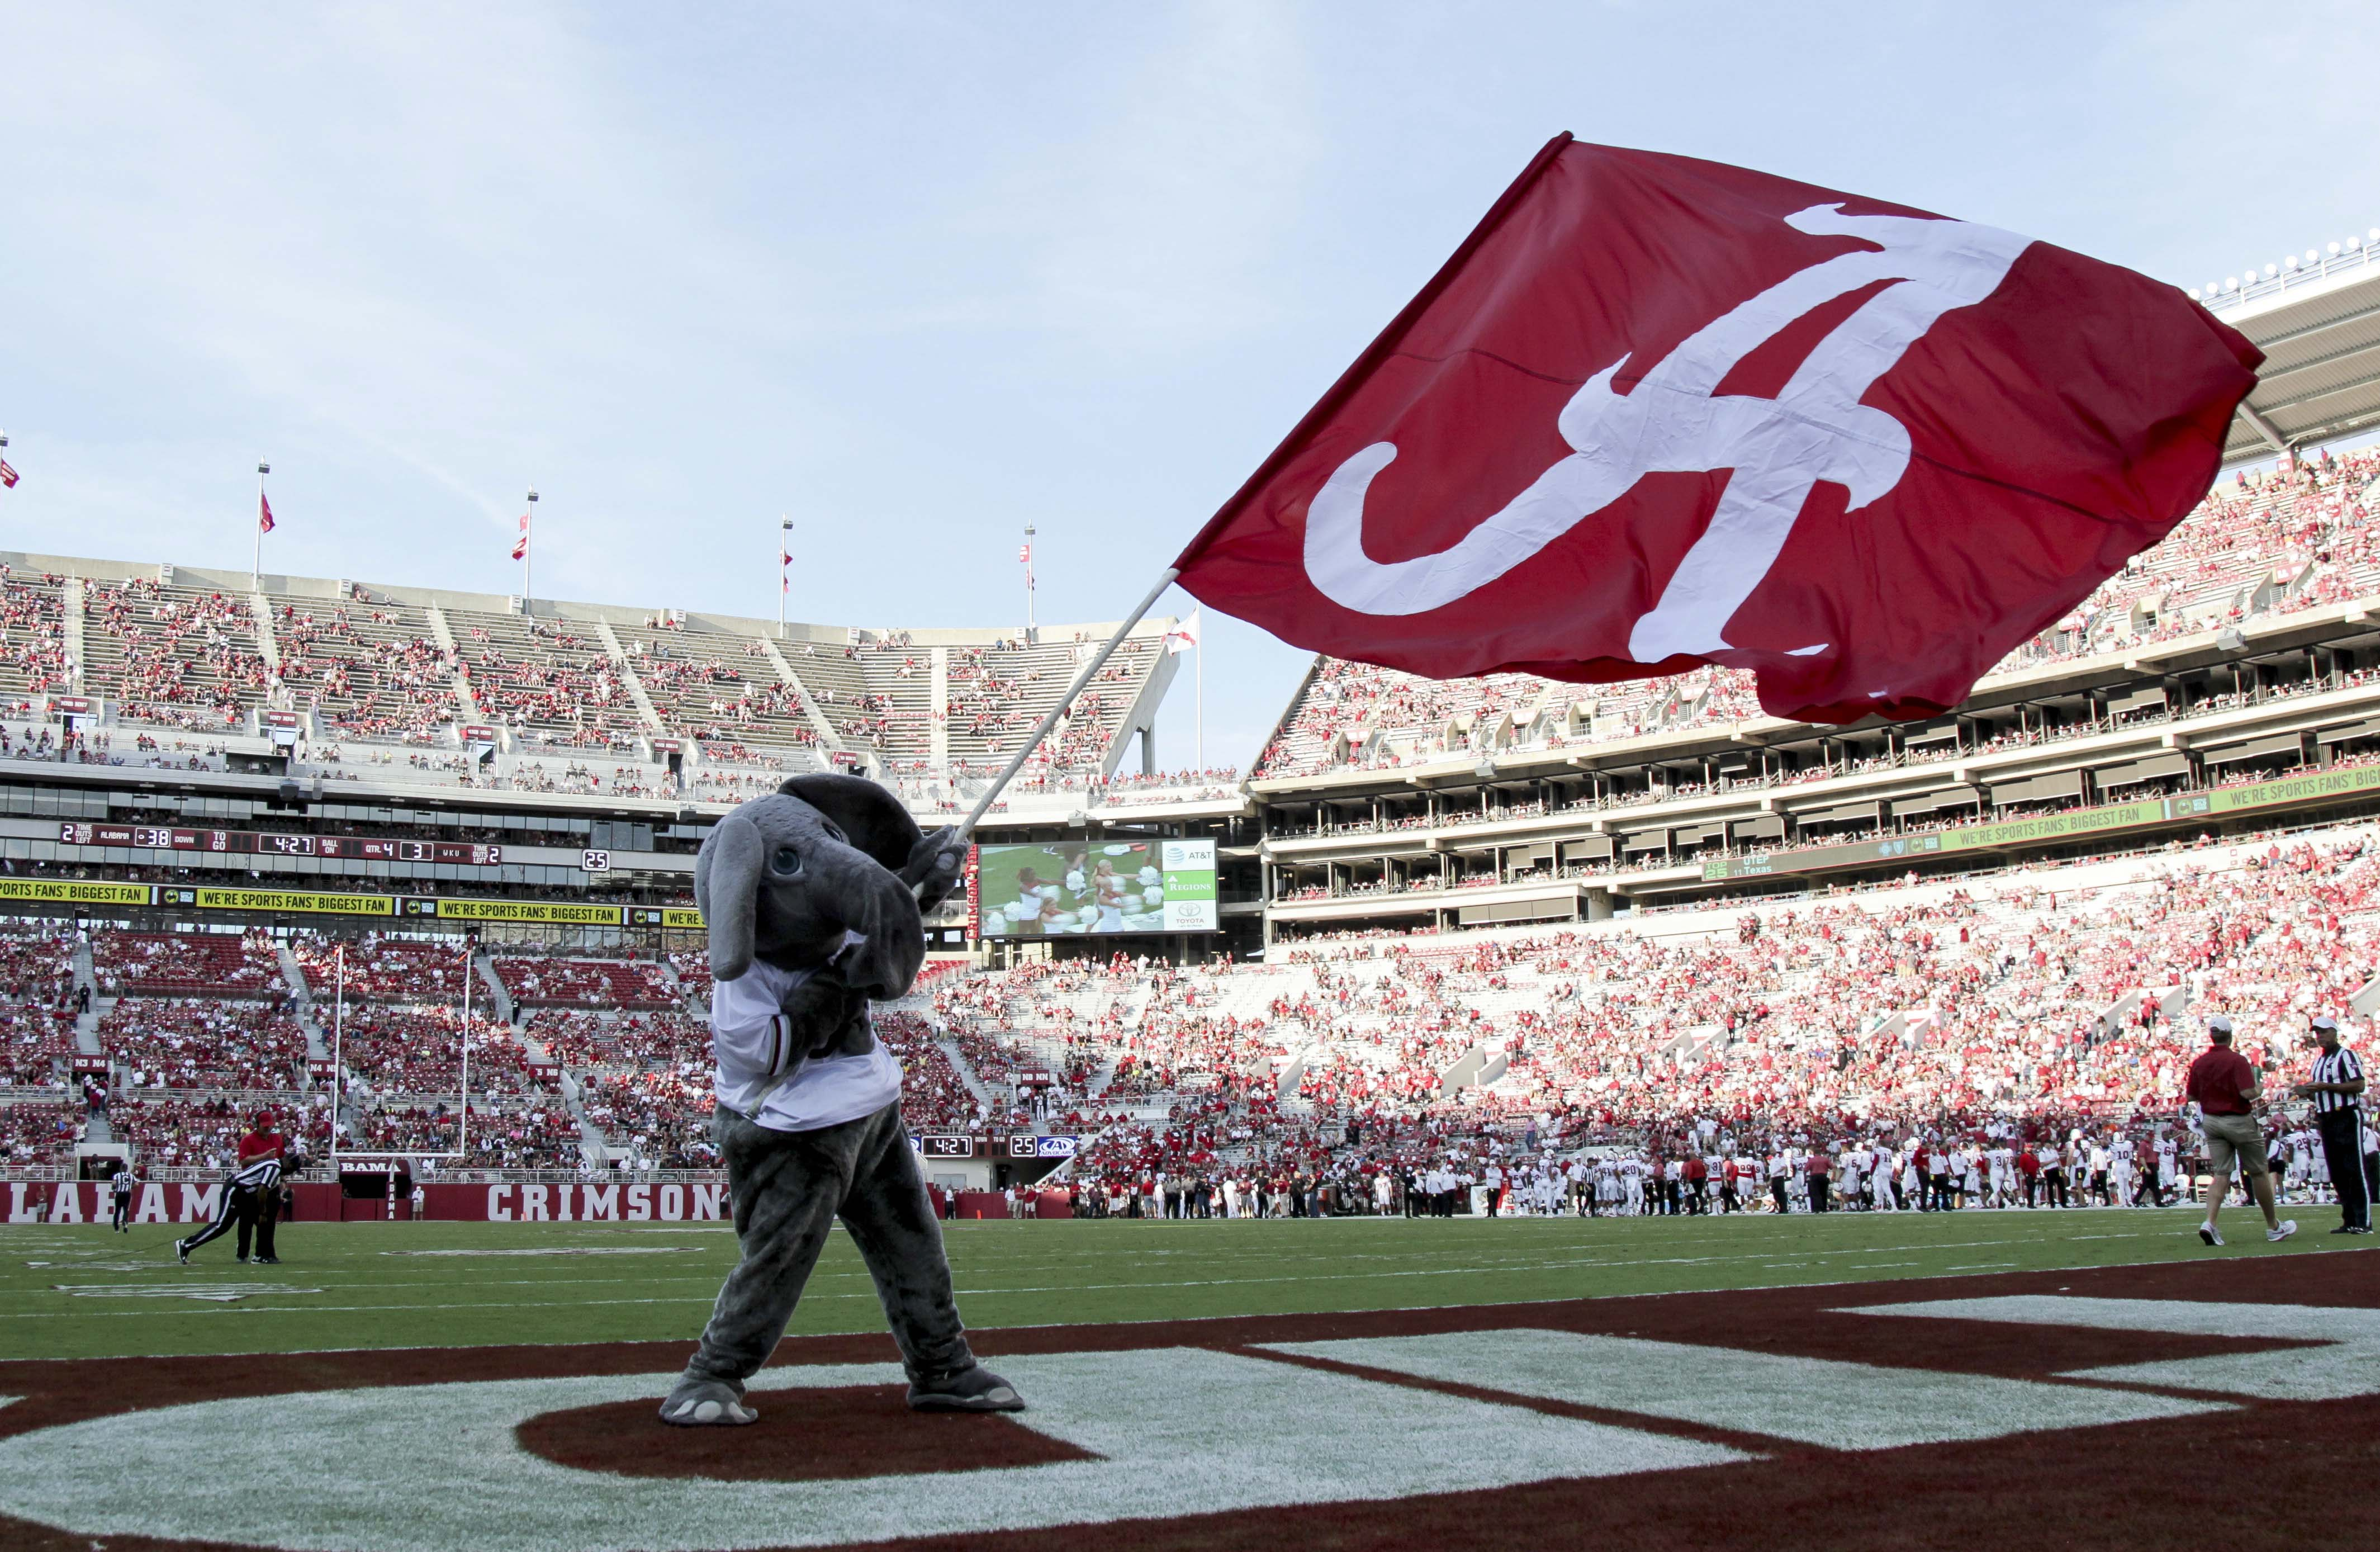 Alabama football daily insider spring depth chart sep 10 2016 tuscaloosa al usa alabama crimson tide mascot big al waves a flag during the game against the western kentucky hilltoppers hilltoppers at nvjuhfo Choice Image